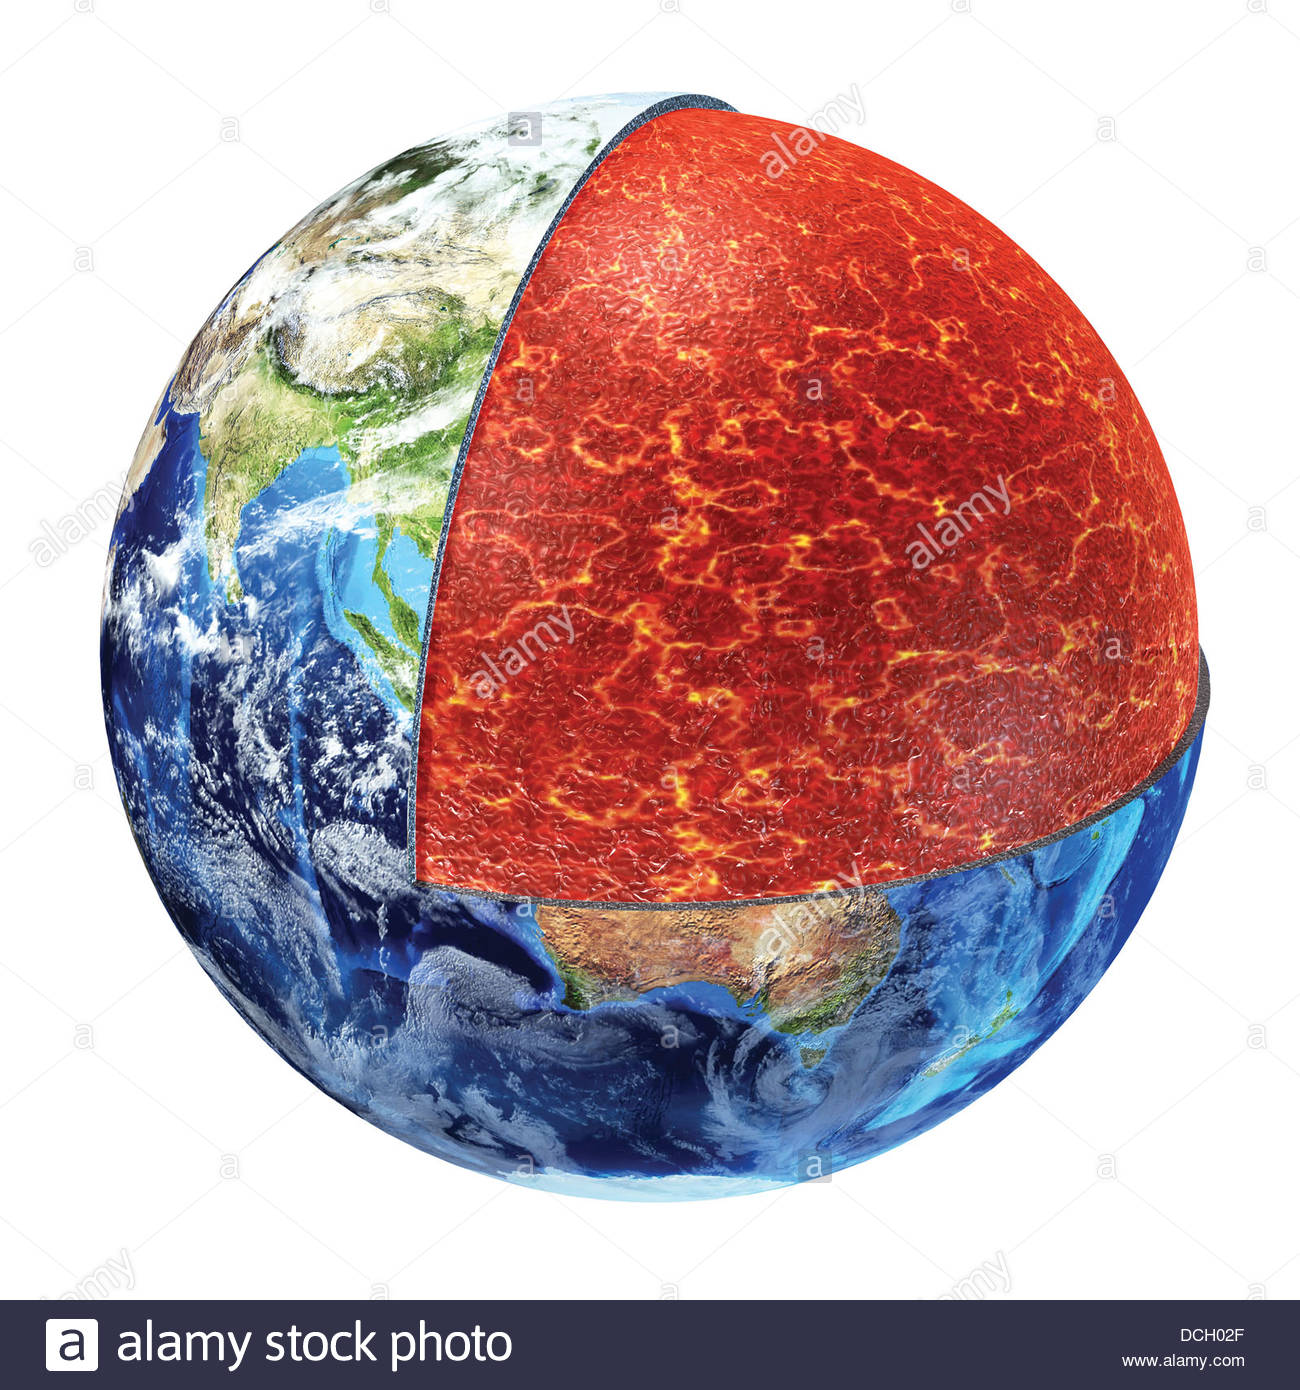 Atmosphere diagram stock photos atmosphere diagram stock images cross section of planet earth showing the upper mantle stock image nvjuhfo Choice Image